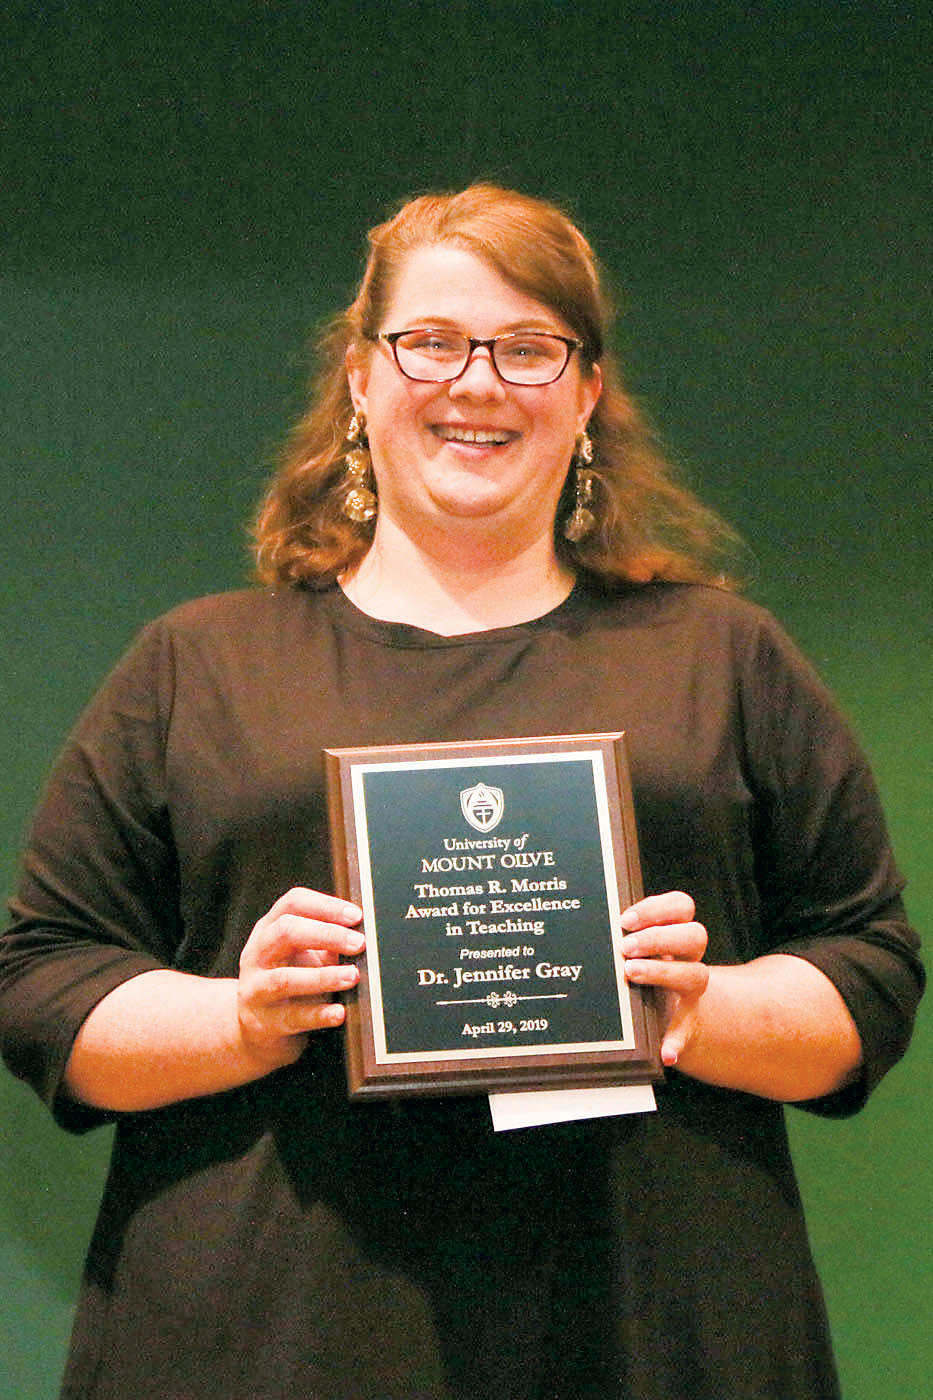 Dr. Jennifer Gray is honored with the Thomas R. Morris Award at the University of Mount Olive.